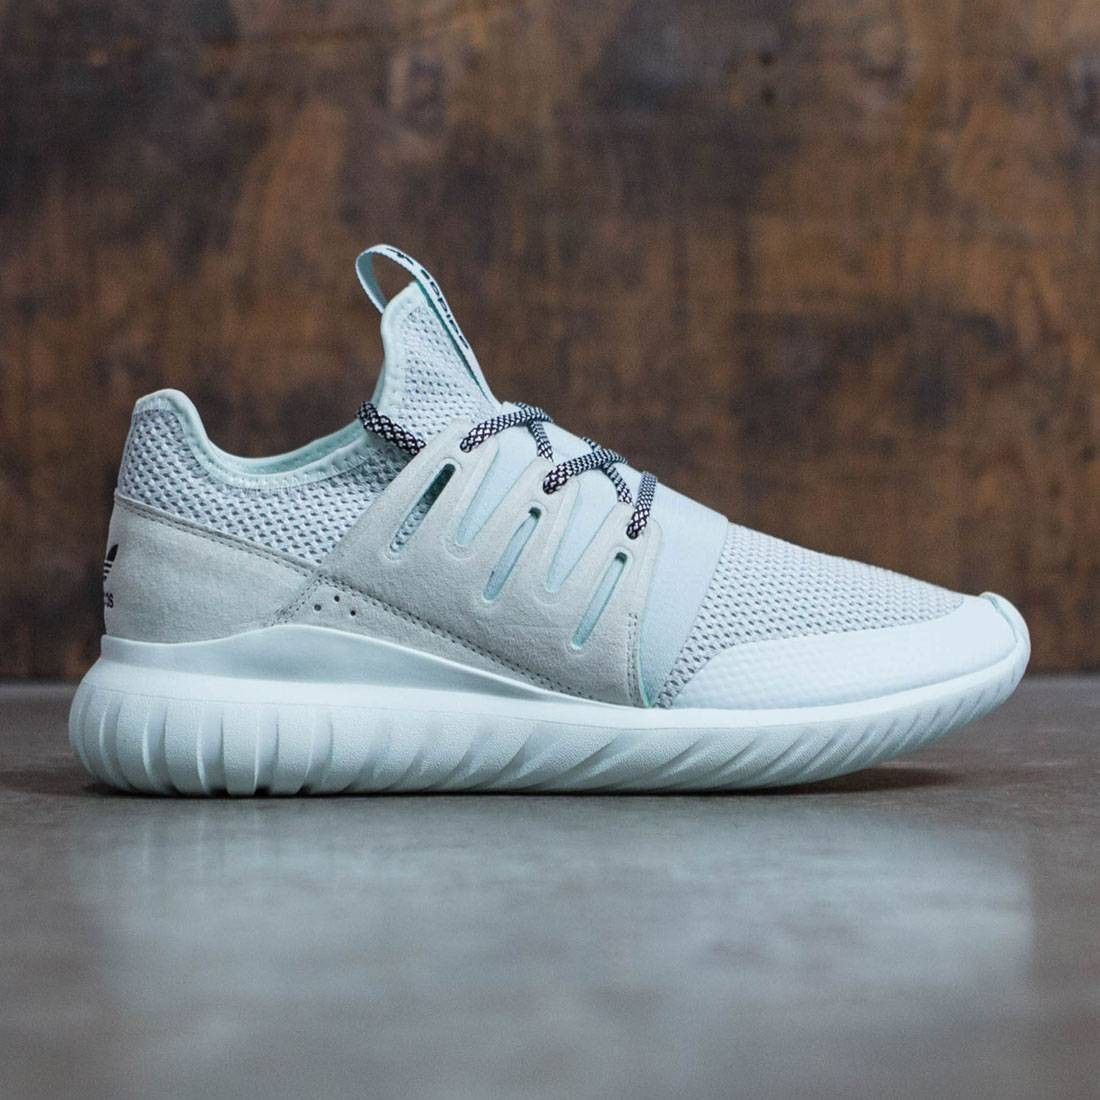 premium selection 8a898 2b843 ... promo code for adidas men tubular radial green ice mint core black  98246 d2f81